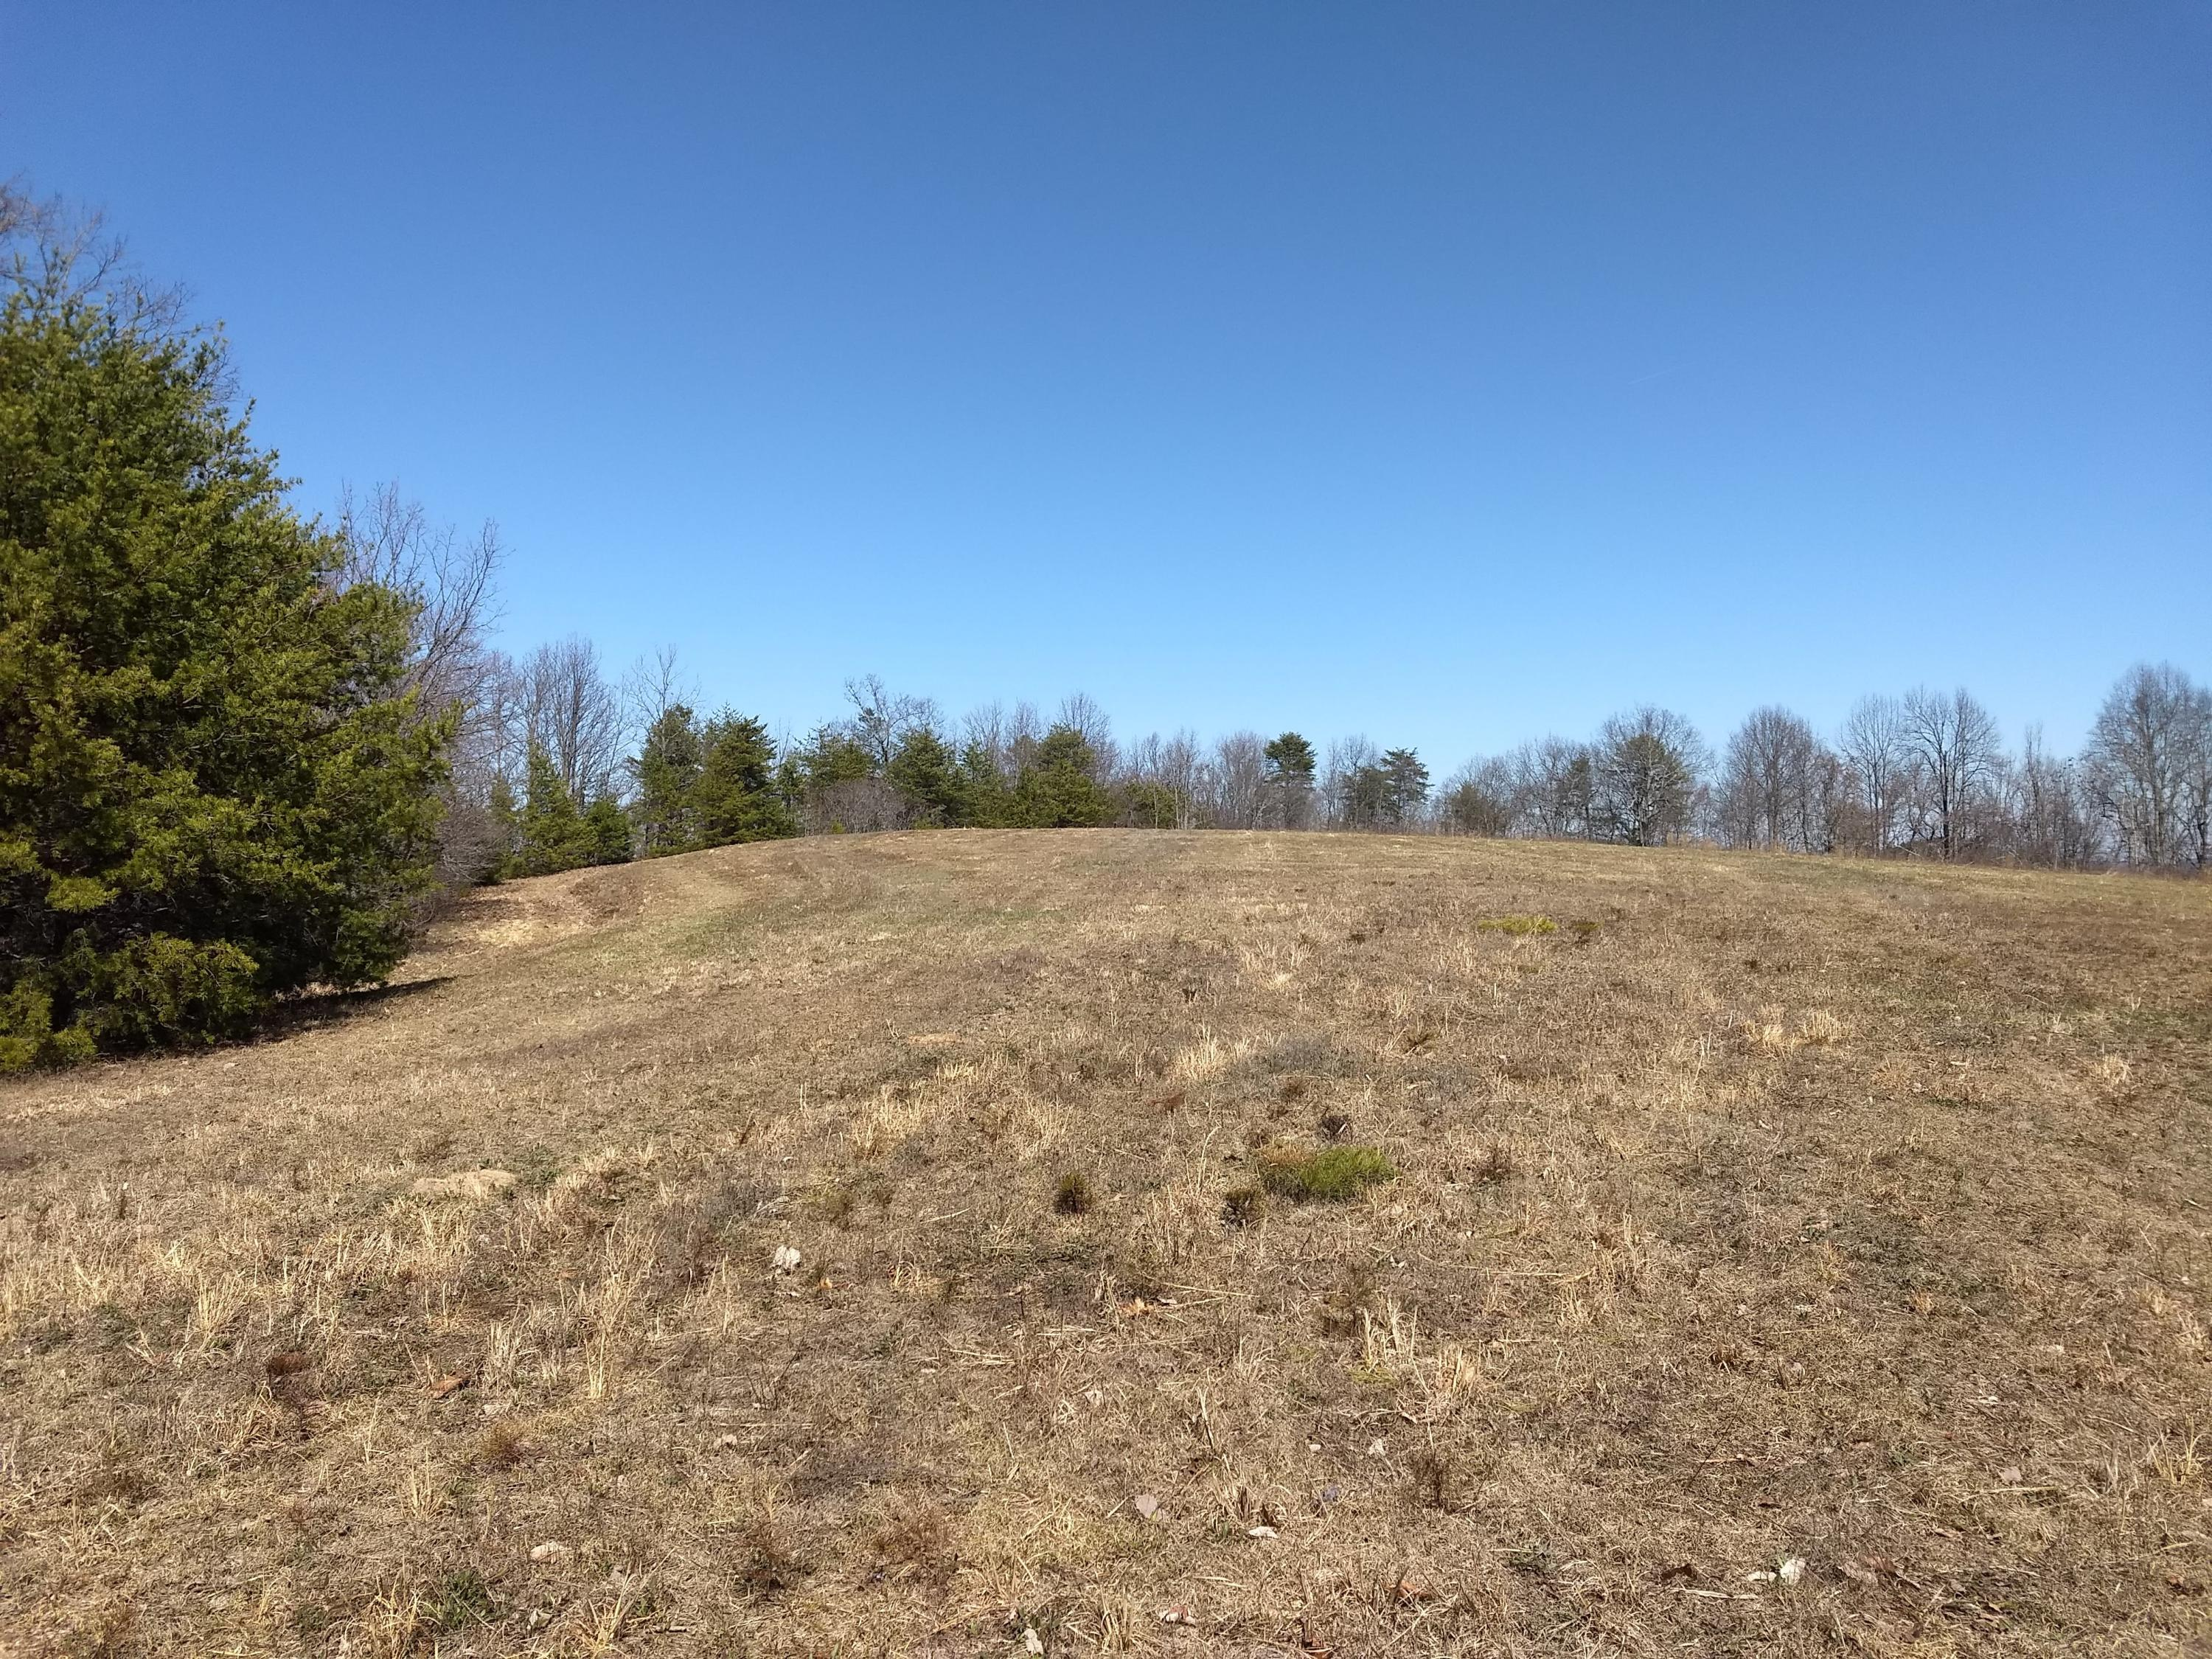 Details for 750.7acres Blackburnhollow-ooltewahgeorge, Cleveland, TN 37312